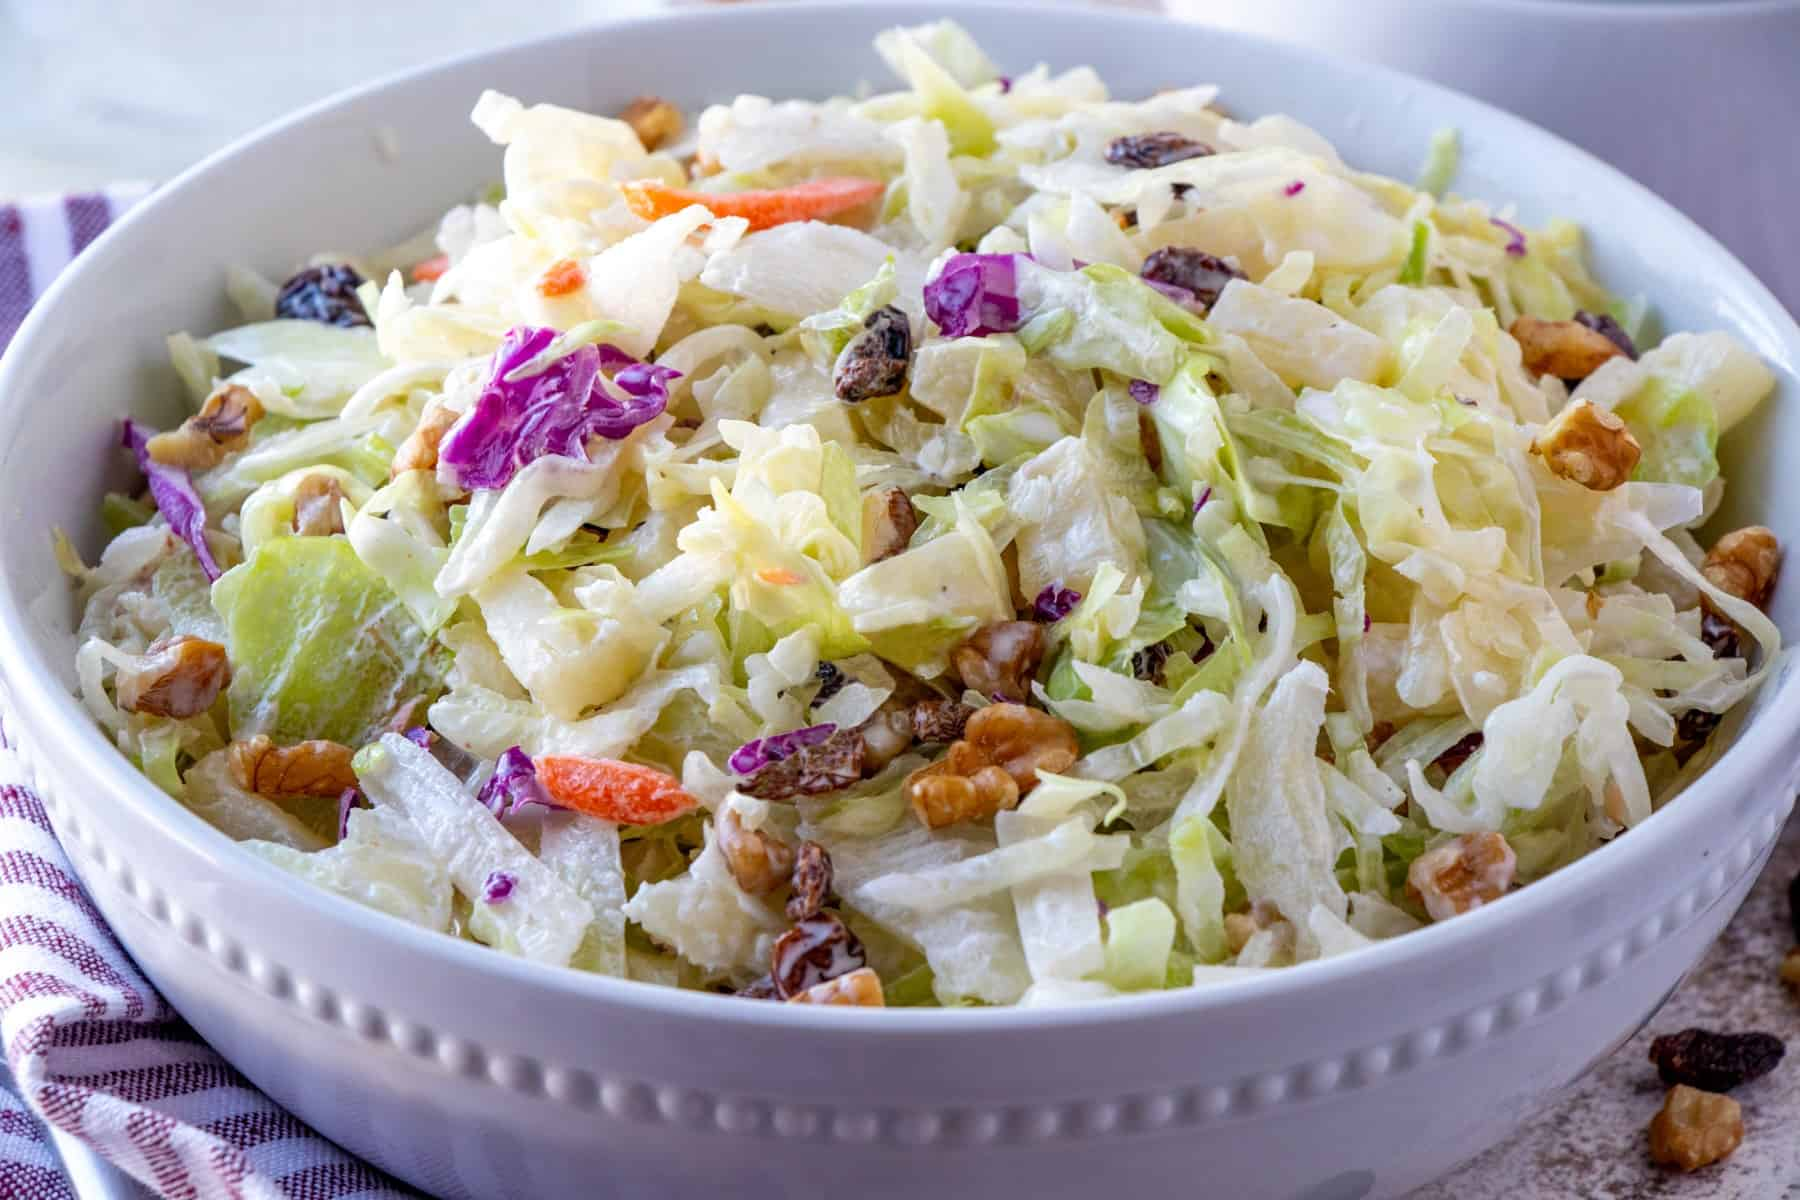 Horizontal shot of coleslaw in a bowl.